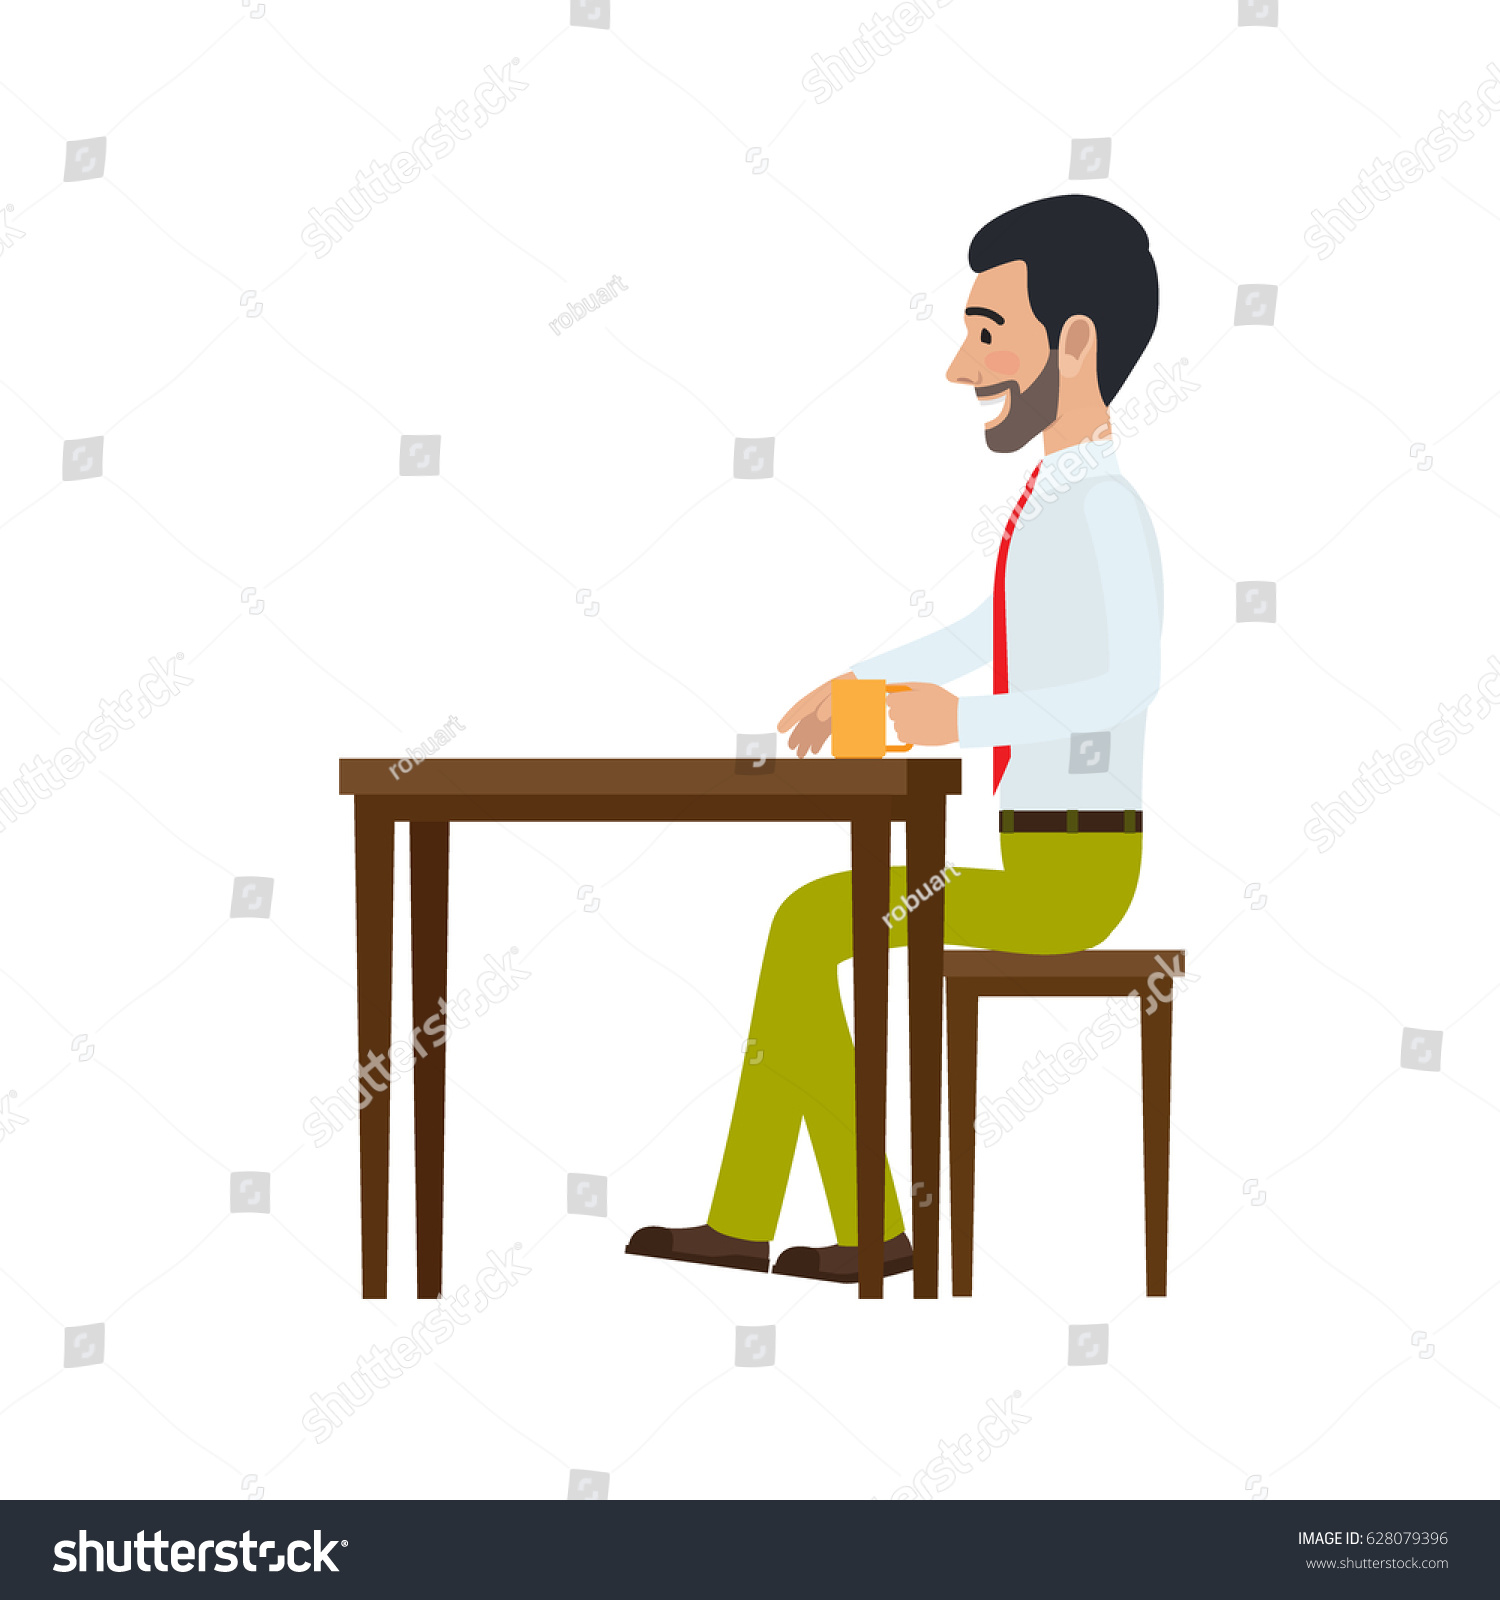 Man sitting in chair side - Man Sitting At Table On Chair And Drinking Tea Side View Man At Endless Work